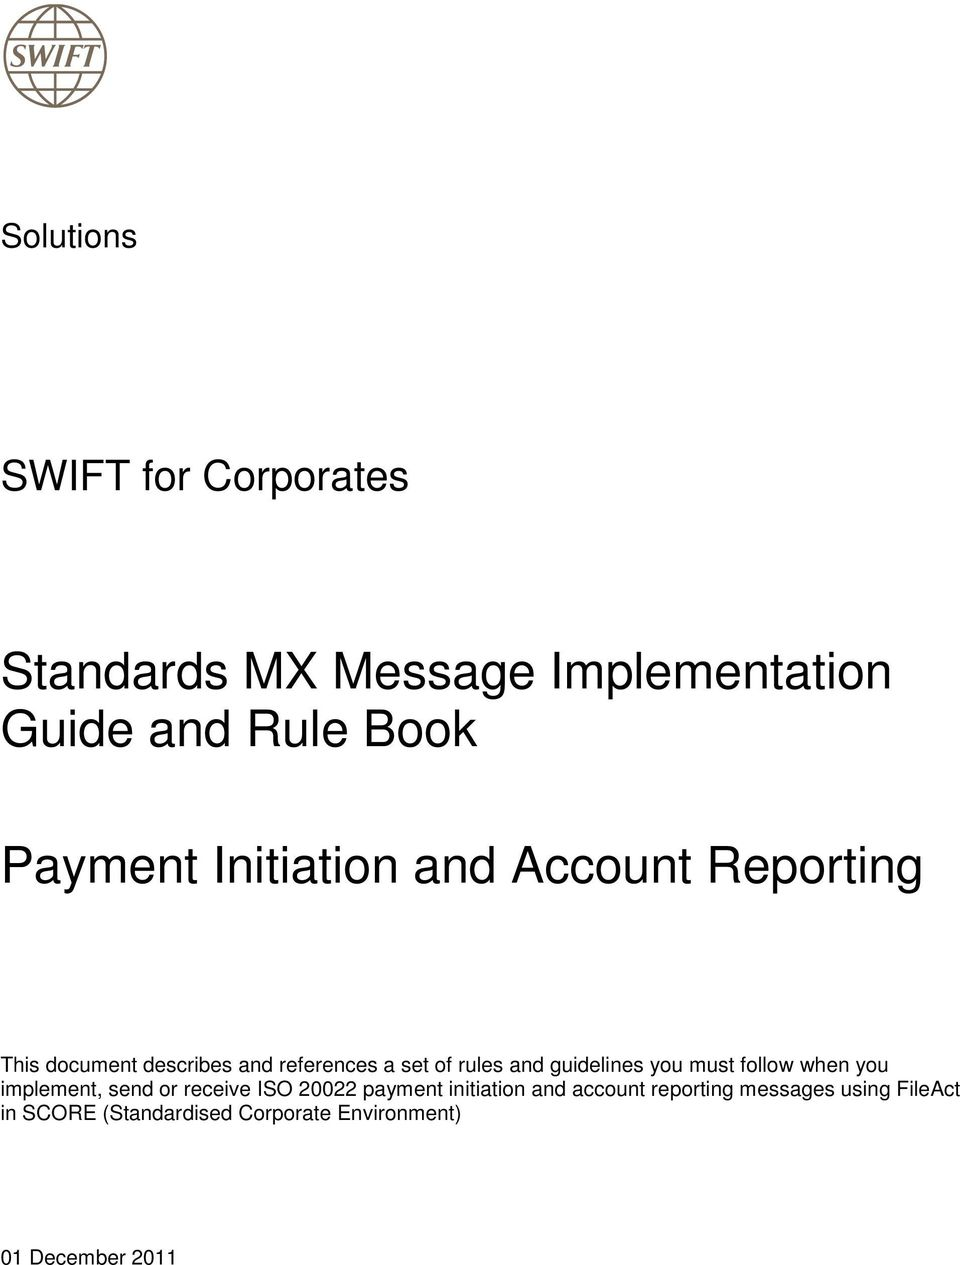 guidelines you must follow when you implement, send or receive ISO 20022 payment initiation and